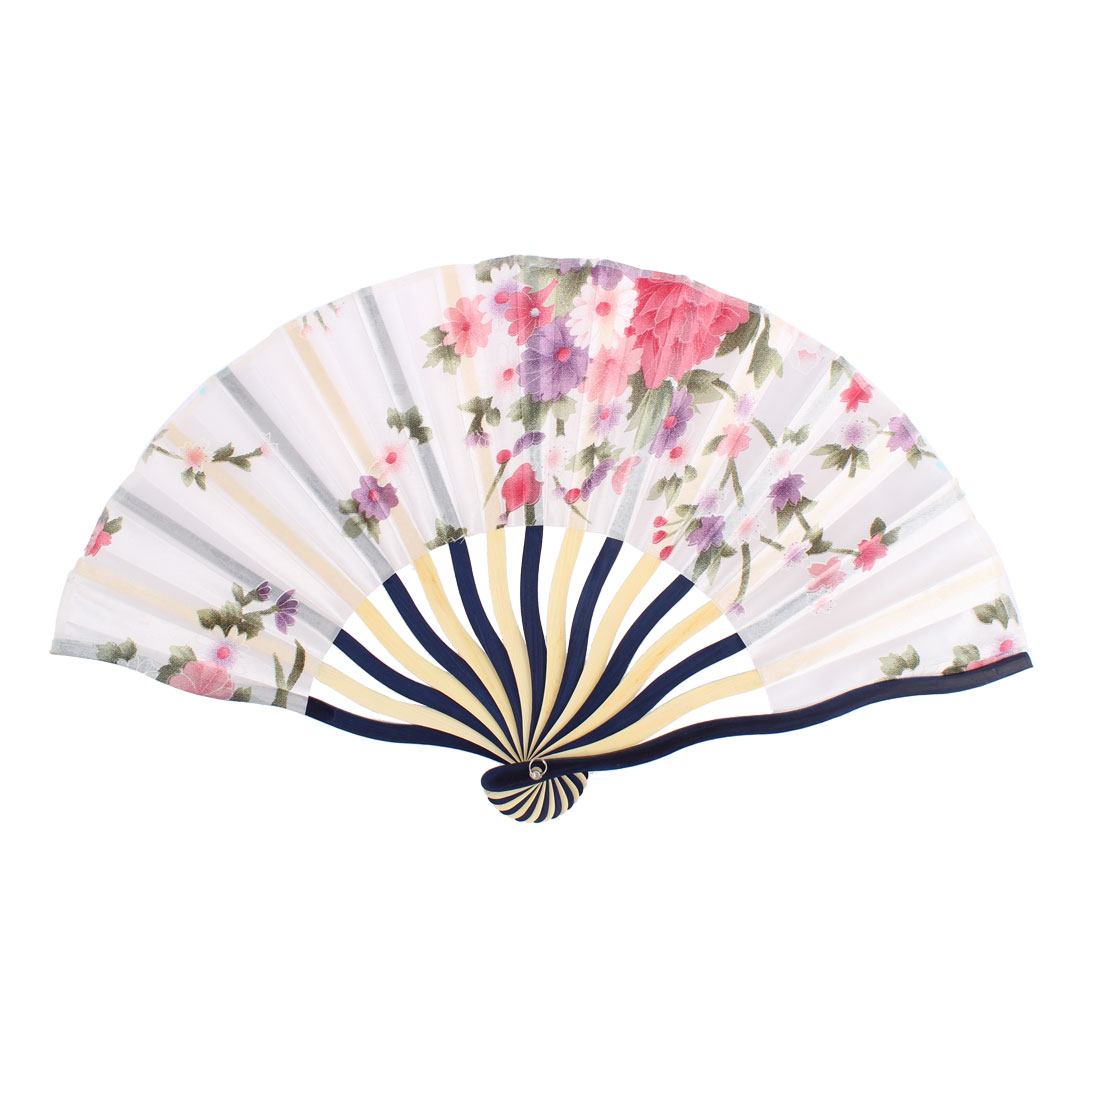 Dancer Wedding Party Floral Printed Nylon Bamboo Frame Portable Foldable Handheld Hand Held Fan Art Decoration